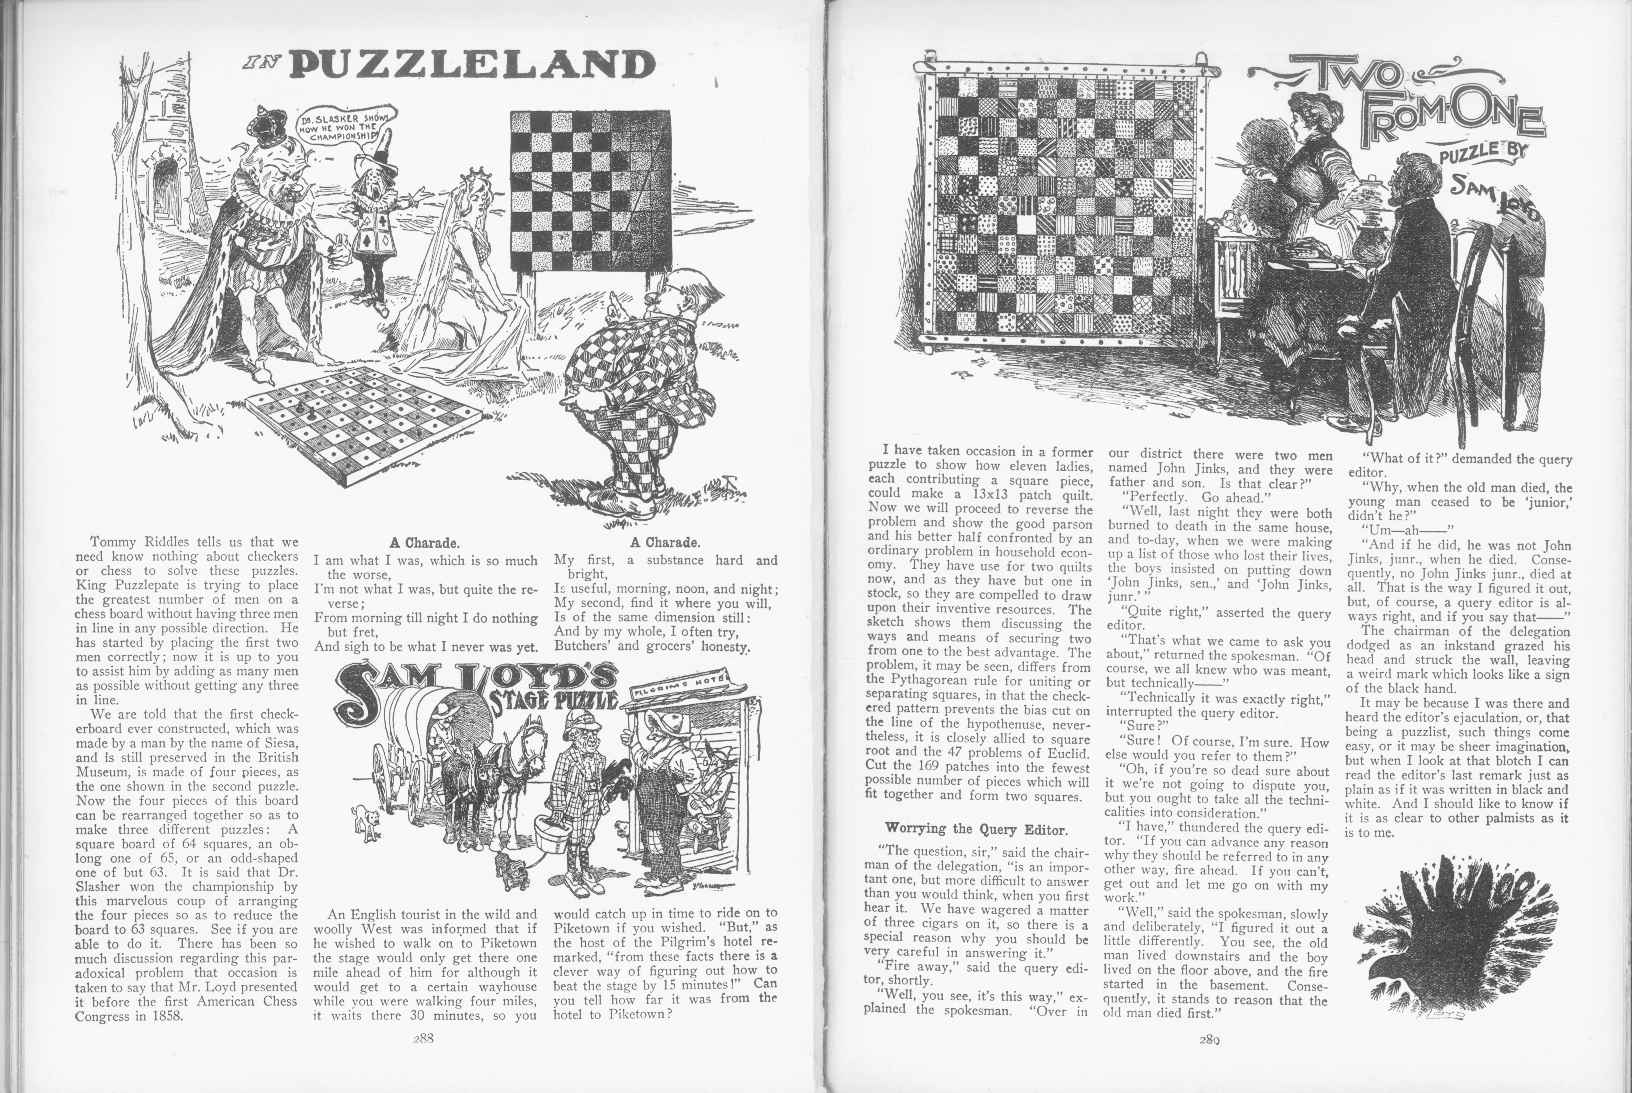 Sam Loyd - Cyclopedia of Puzzles - page 288-289